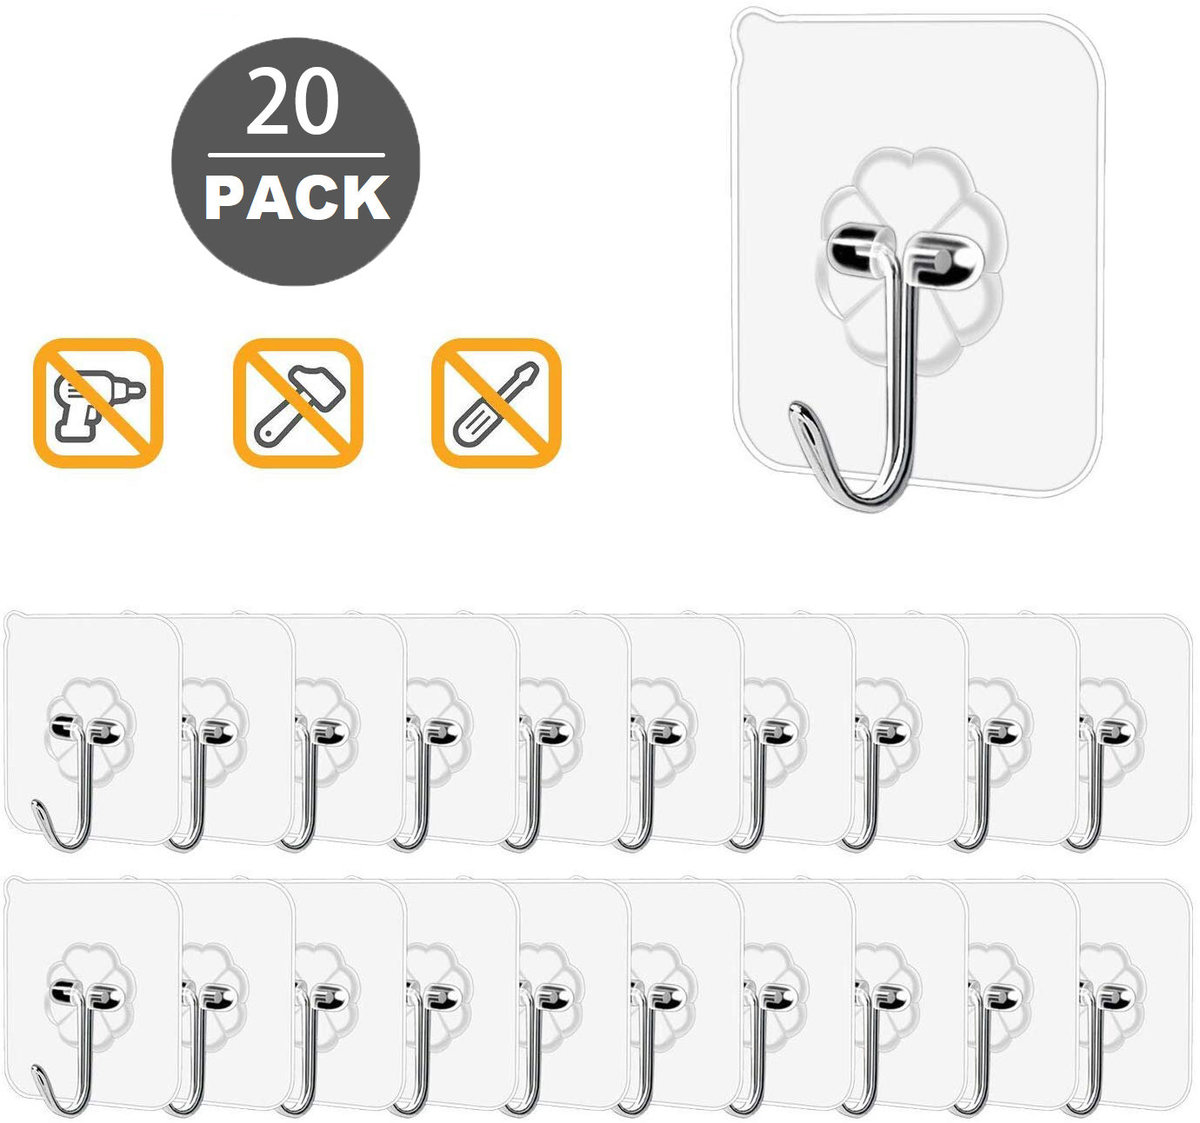 【20 Pack】 Transparent Reusable Seamless Hooks  Waterproof and Oilproof